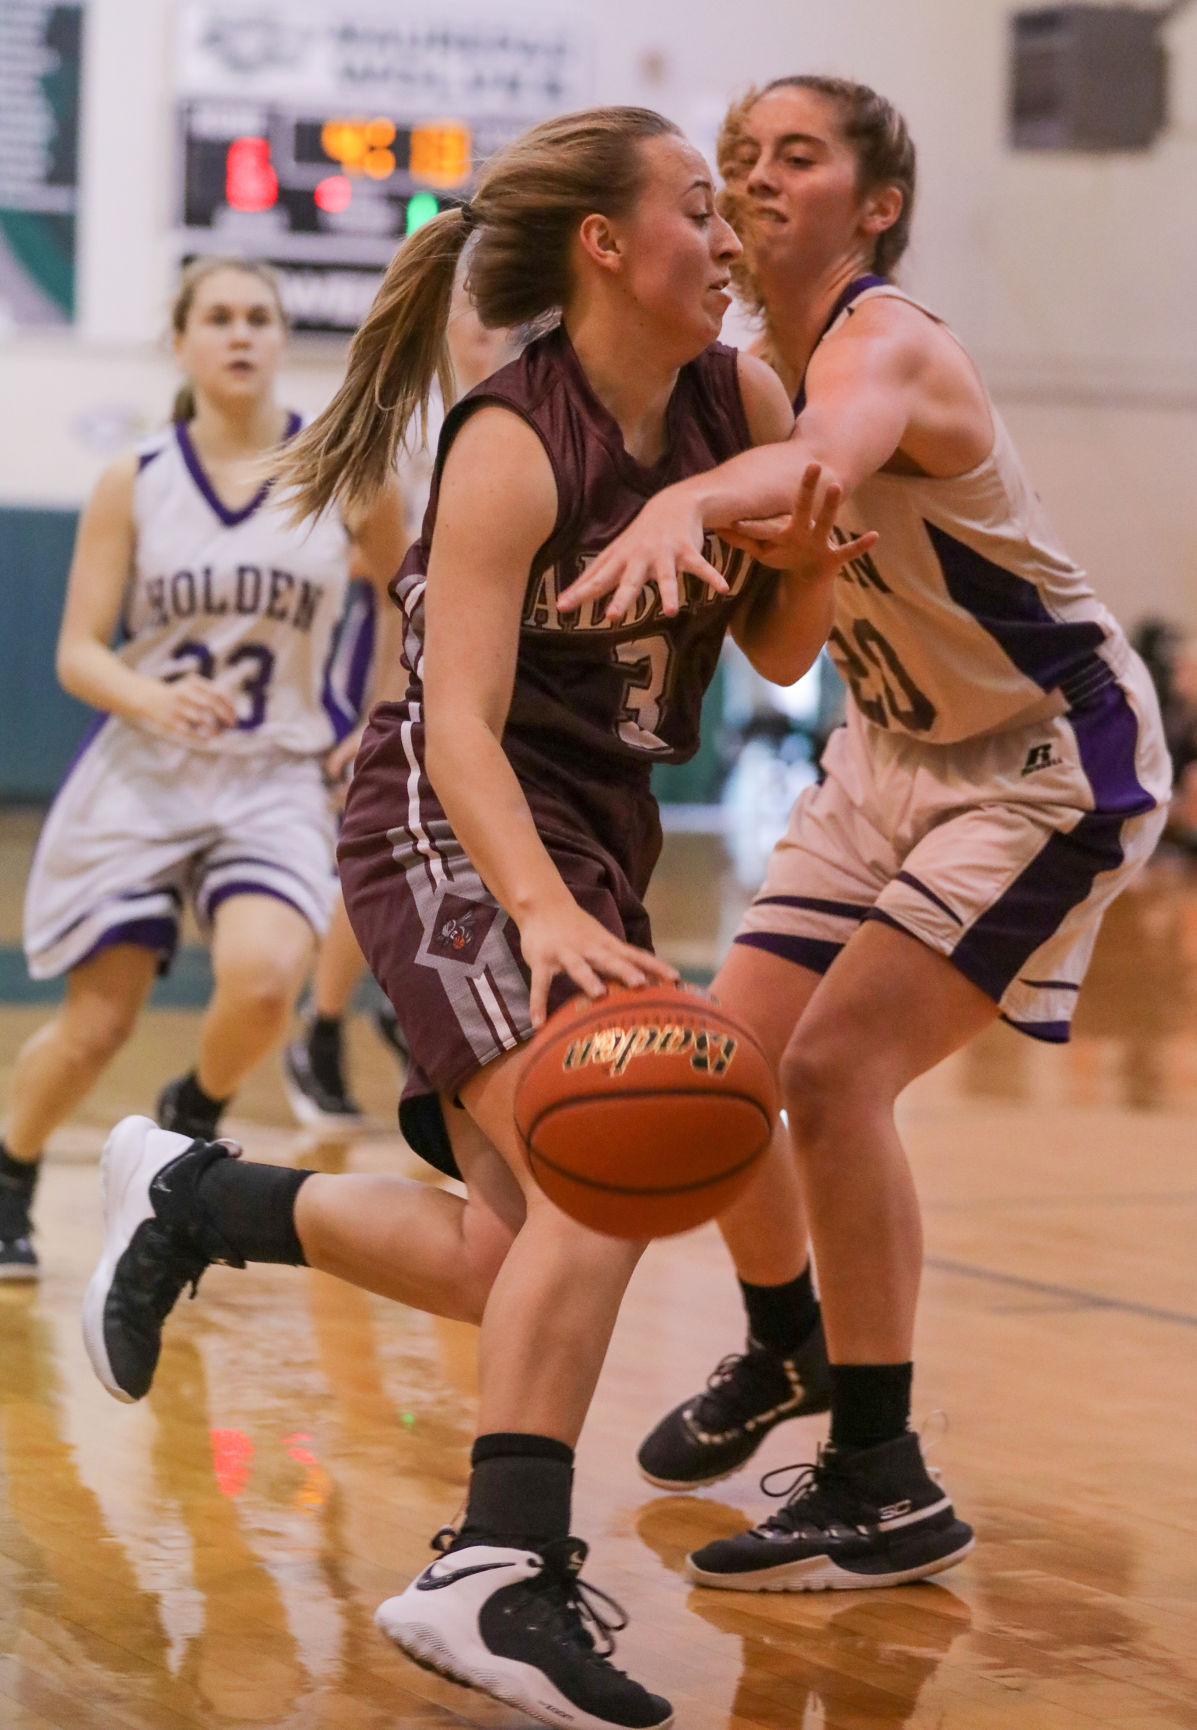 Albany vs. Holden girls basketball Camryn Woods Emma Hutchinson